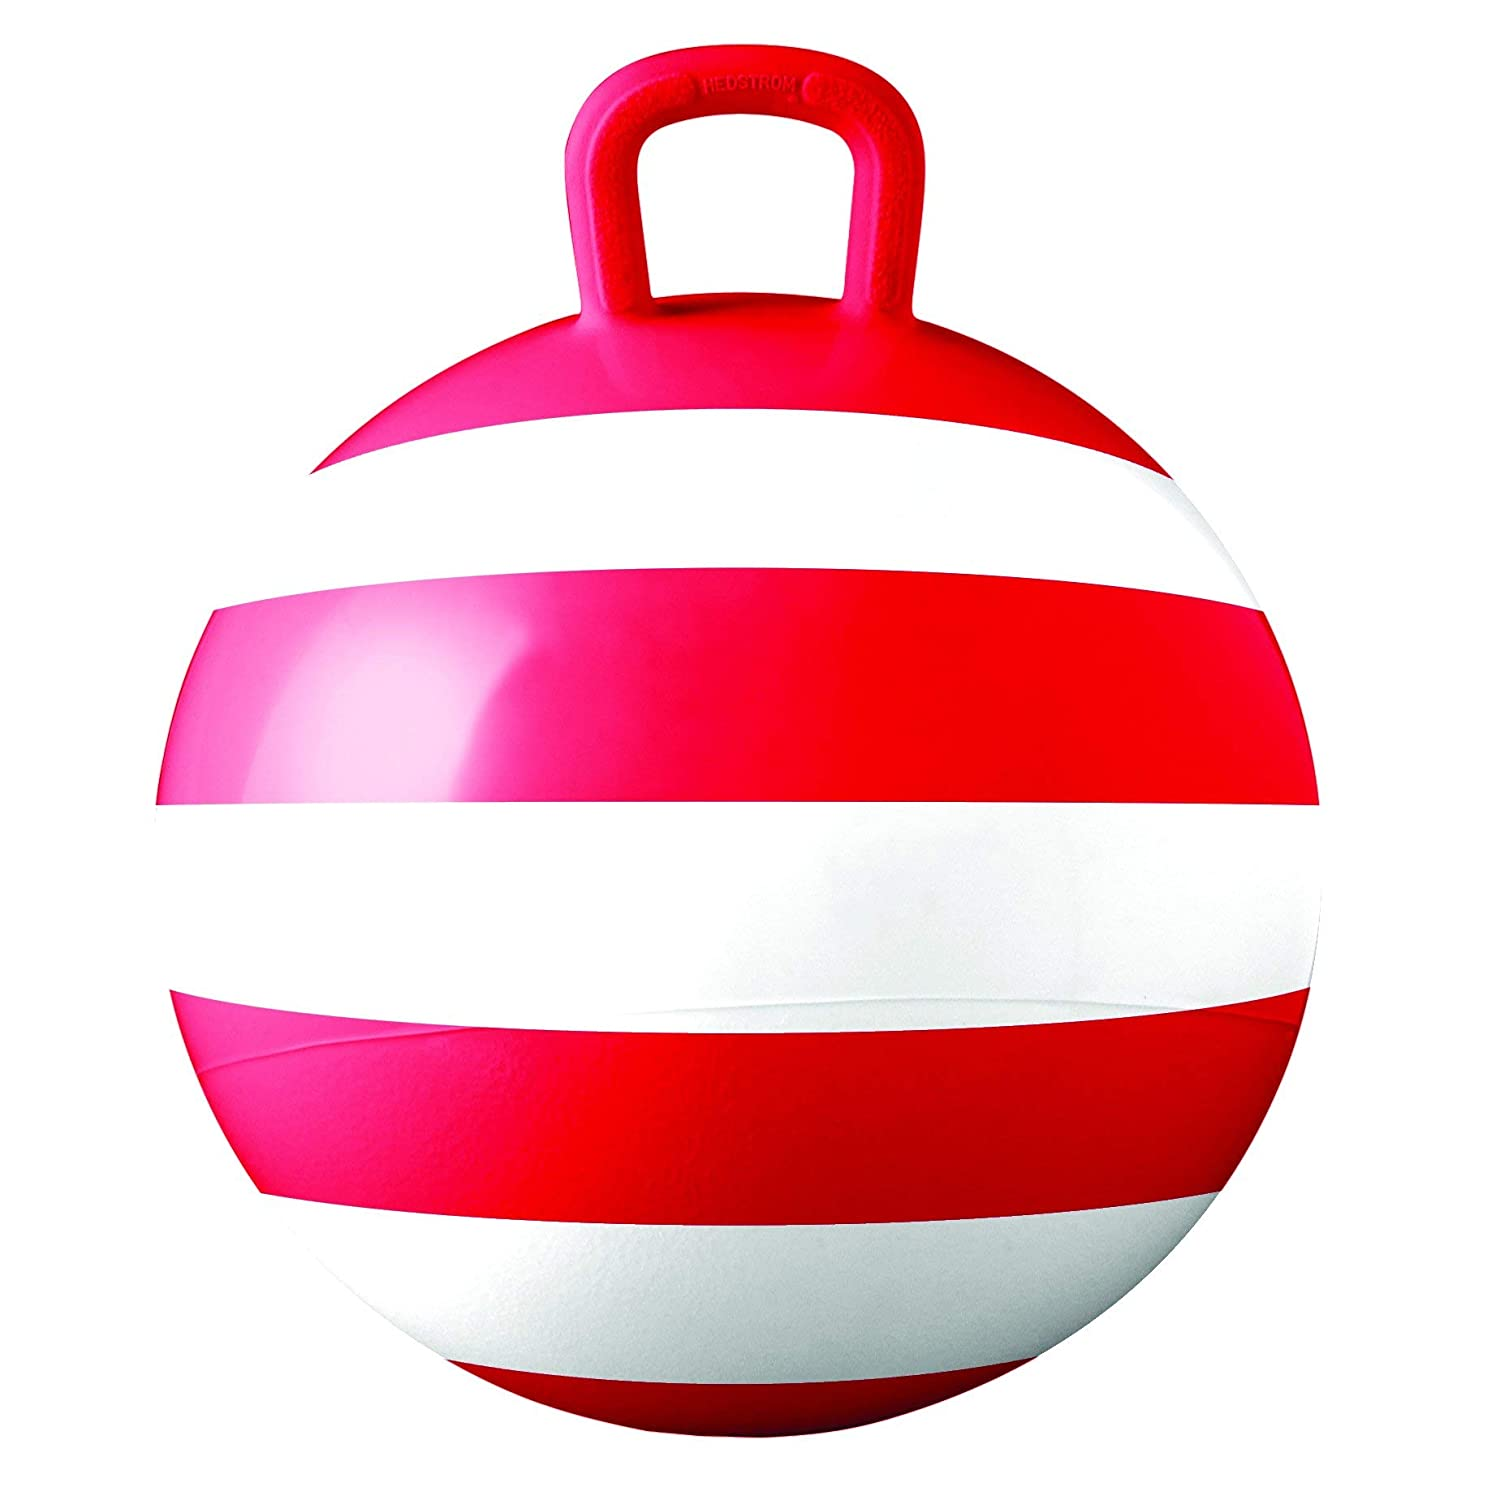 Hedstrom Red Striped Hopper Ball Kid's ride on toy Bouncy hopping ball with handle 15 Inch